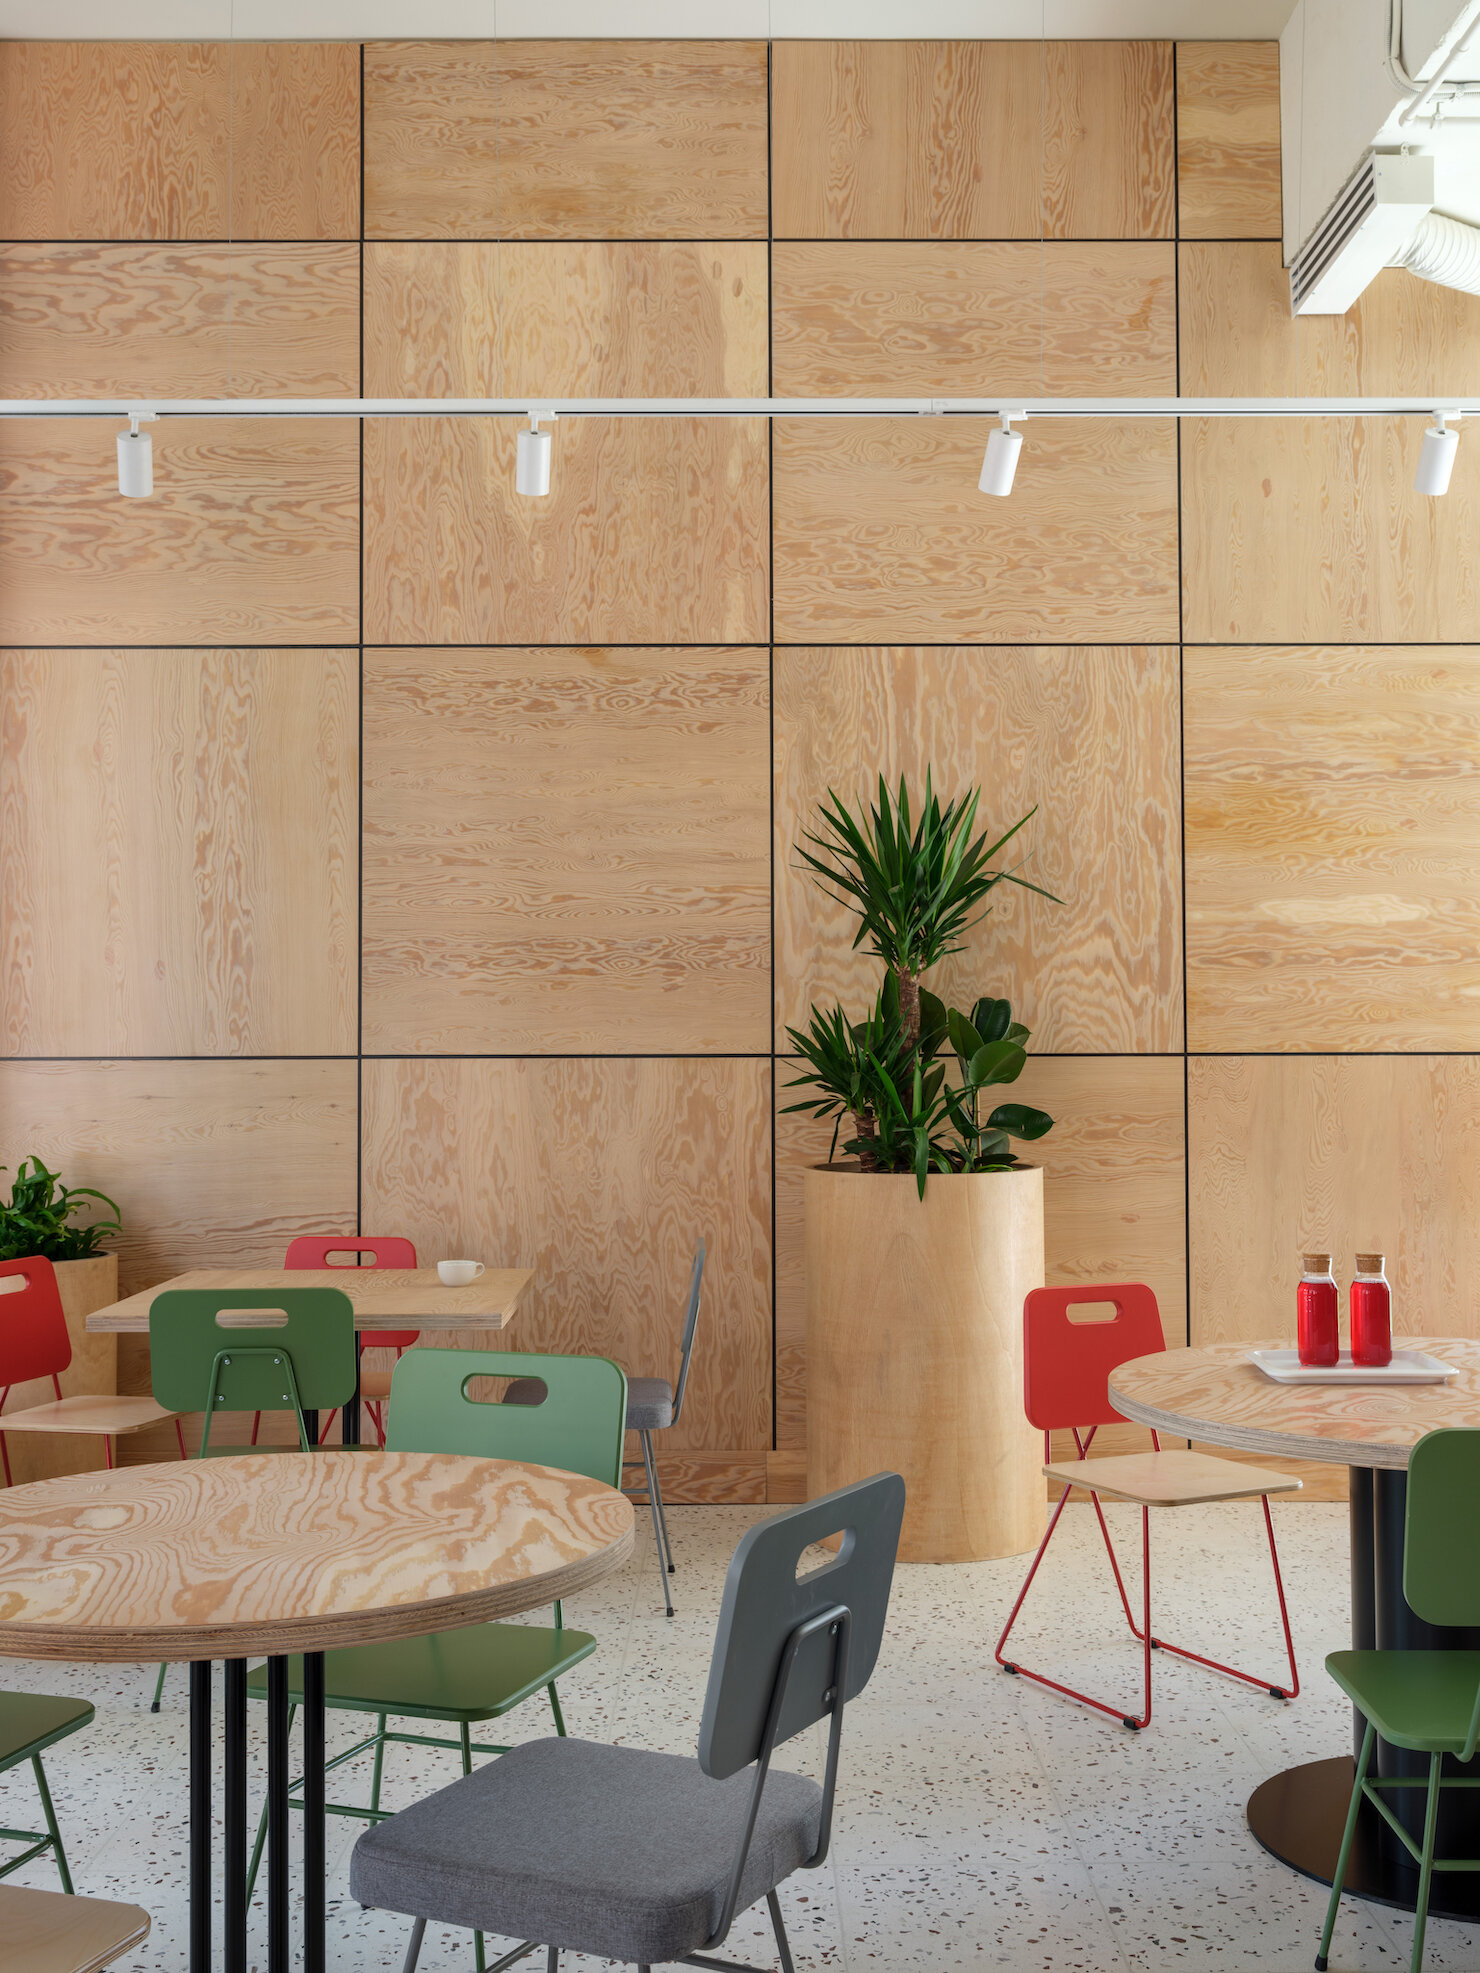 Natural wood grains on the wall panel adds texture and complexity to the large walls.